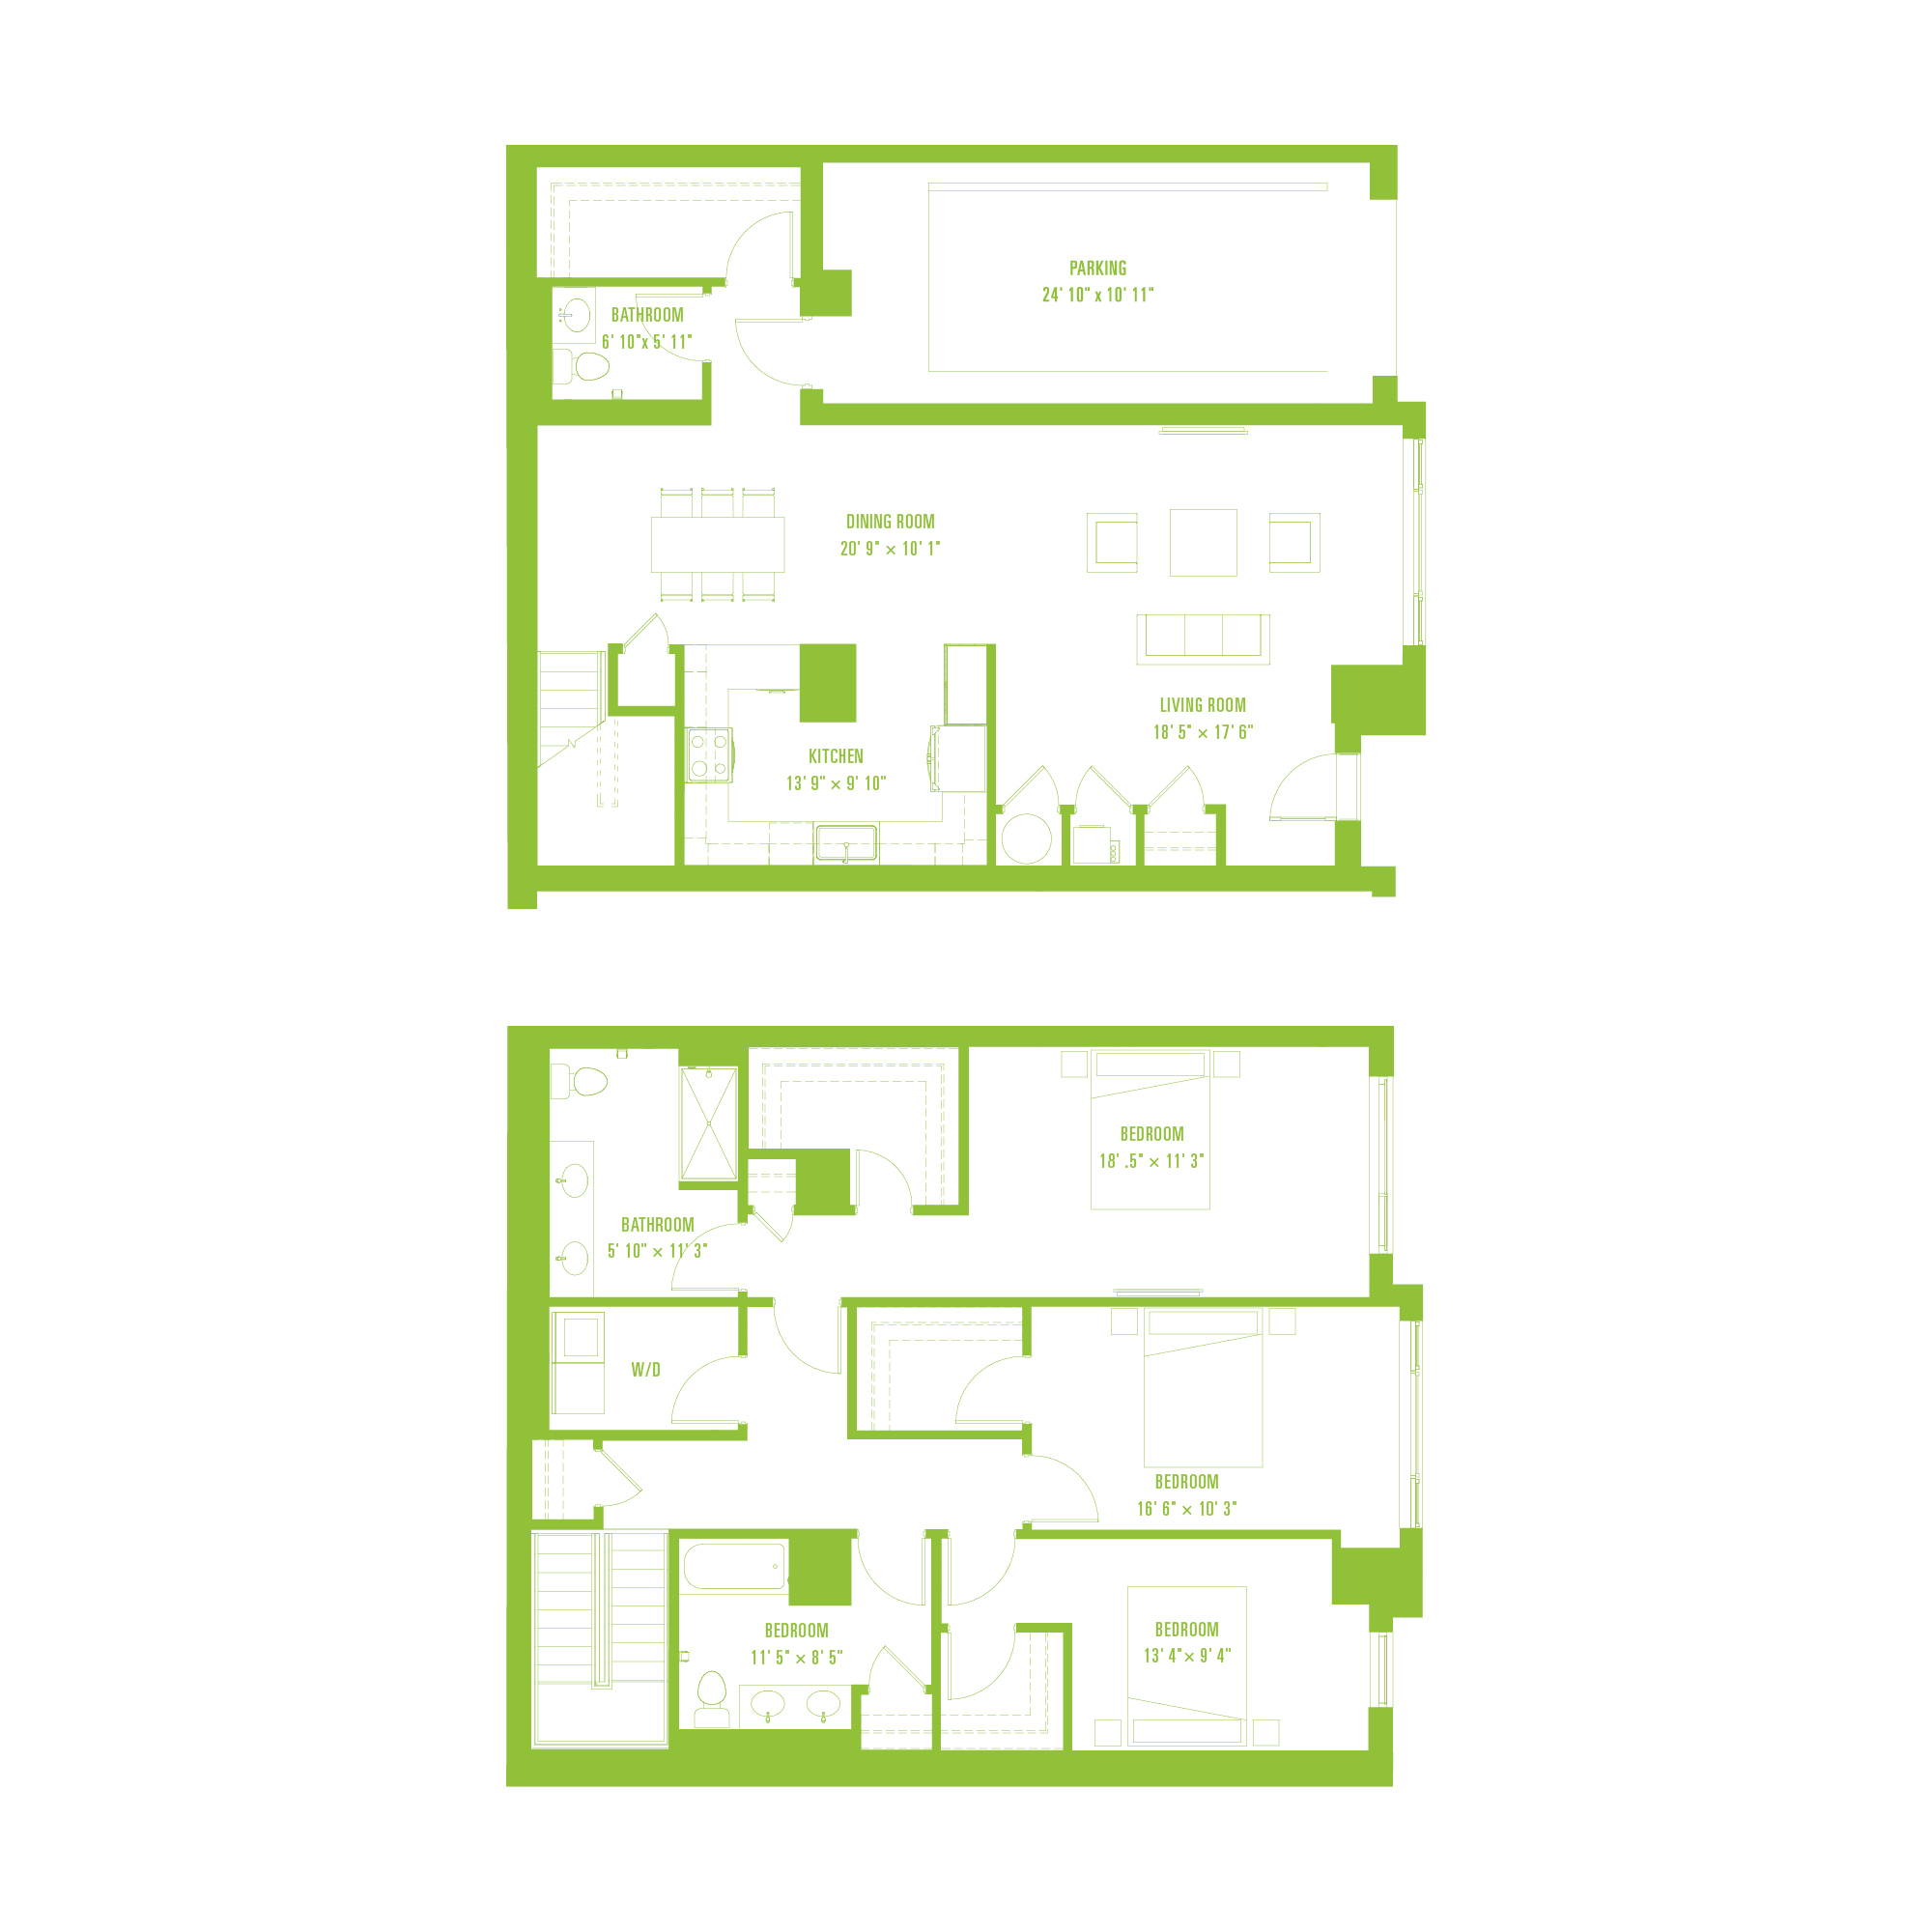 A flat representation of the floorplan of the unit in the building.